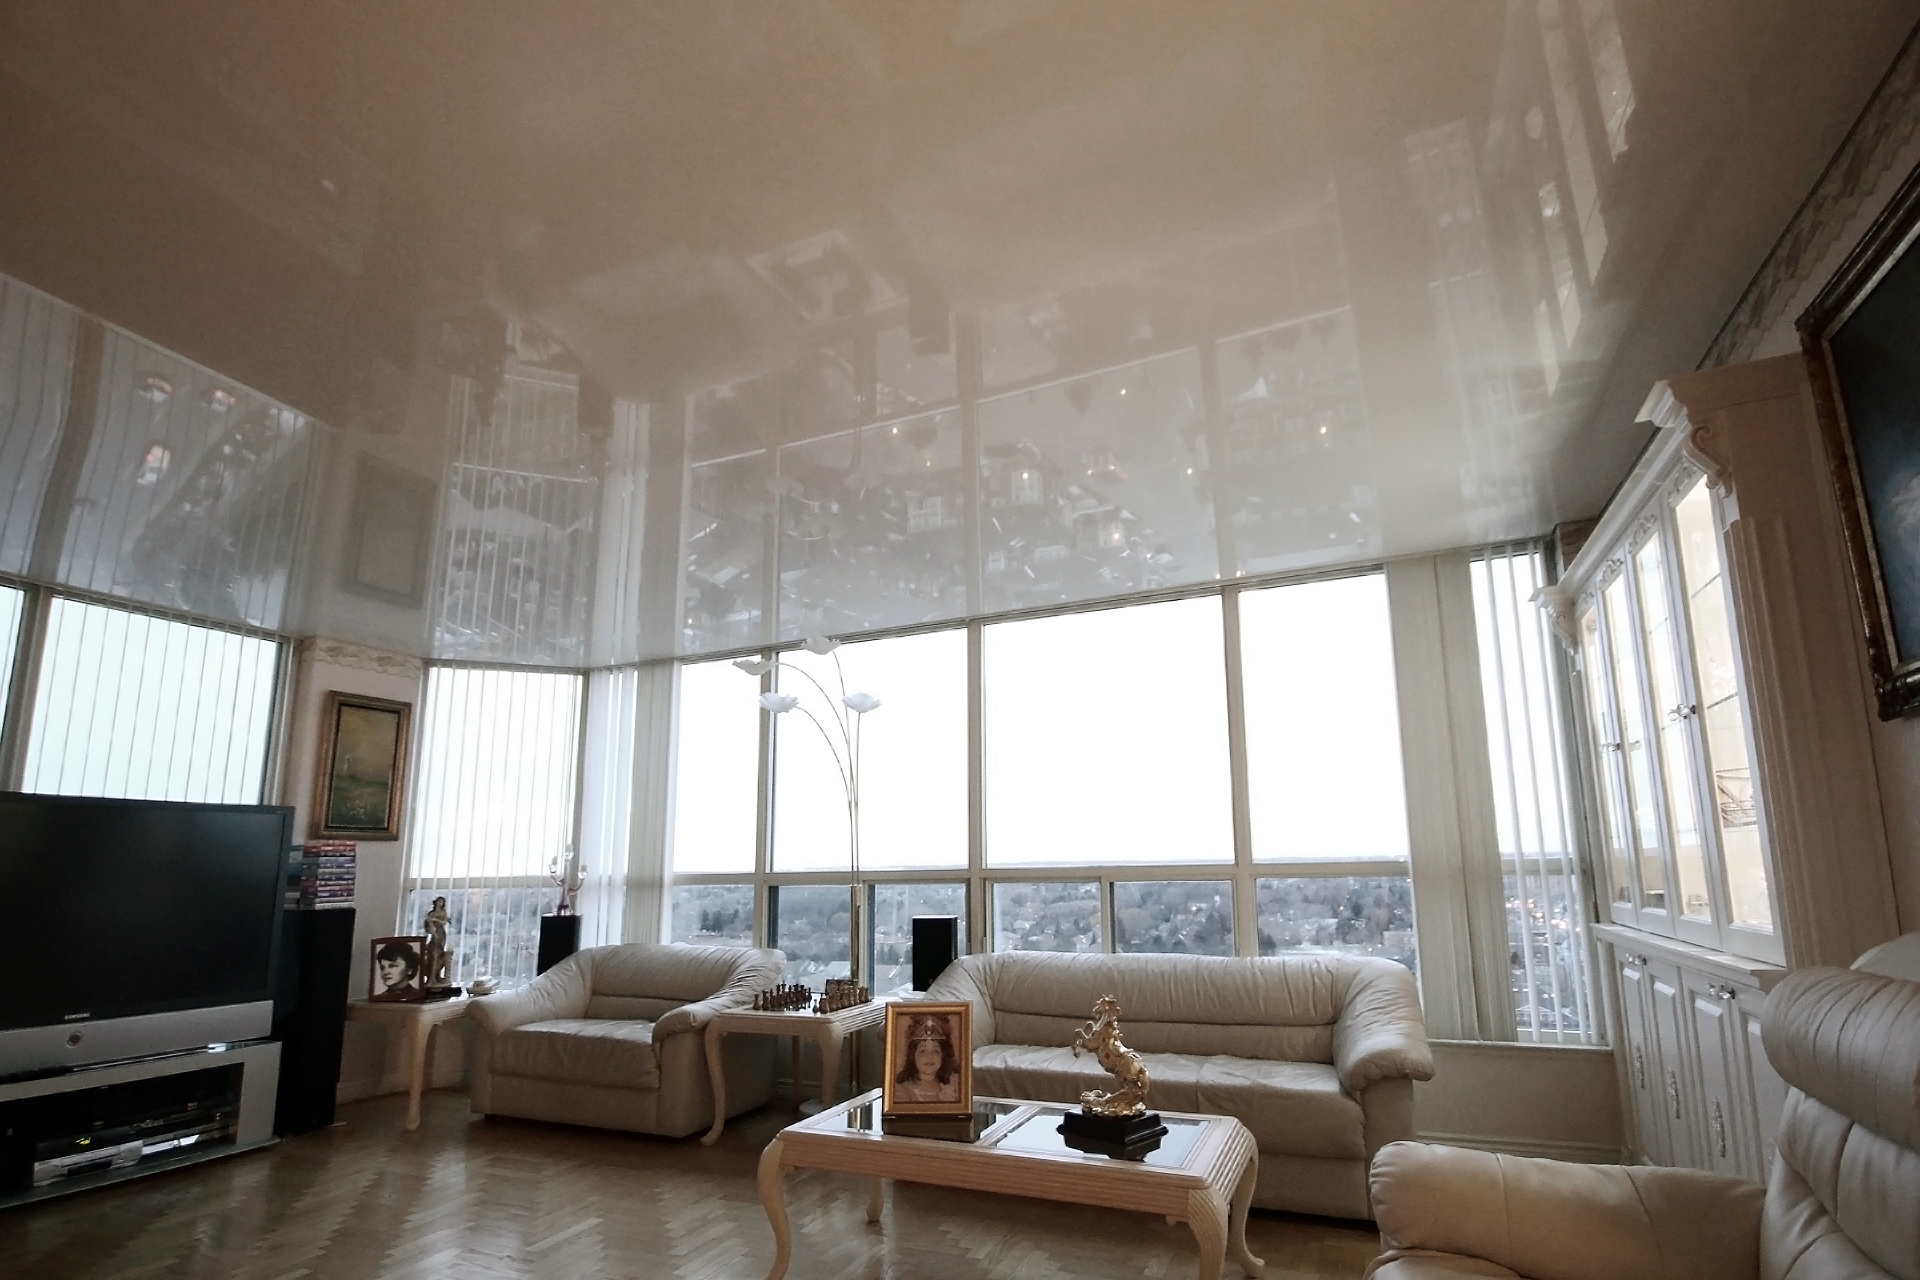 file:stretch-ceiling-high-gloss-white - wikimedia commons